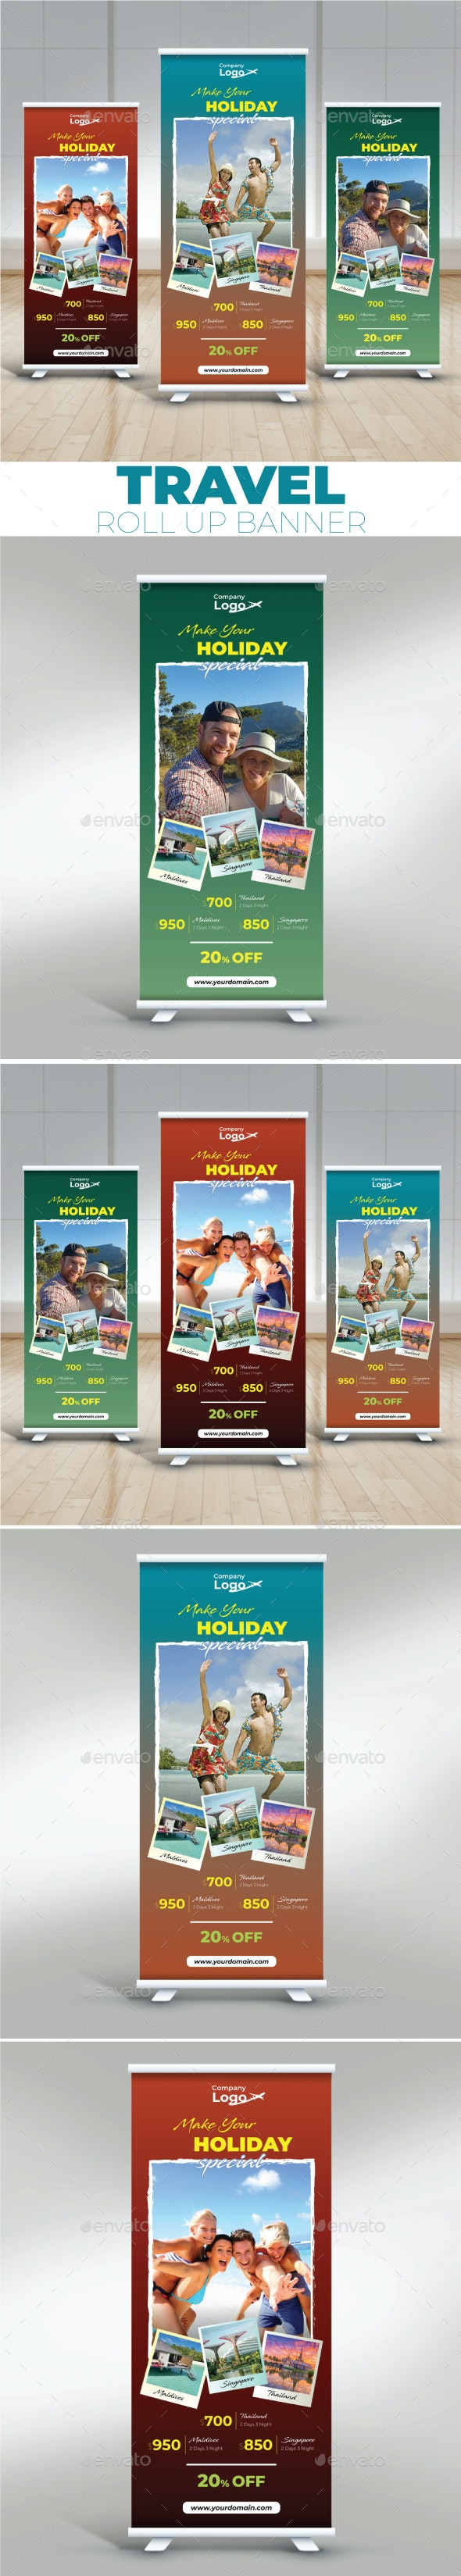 Travel Roll Up Banner - Signage Print Templates